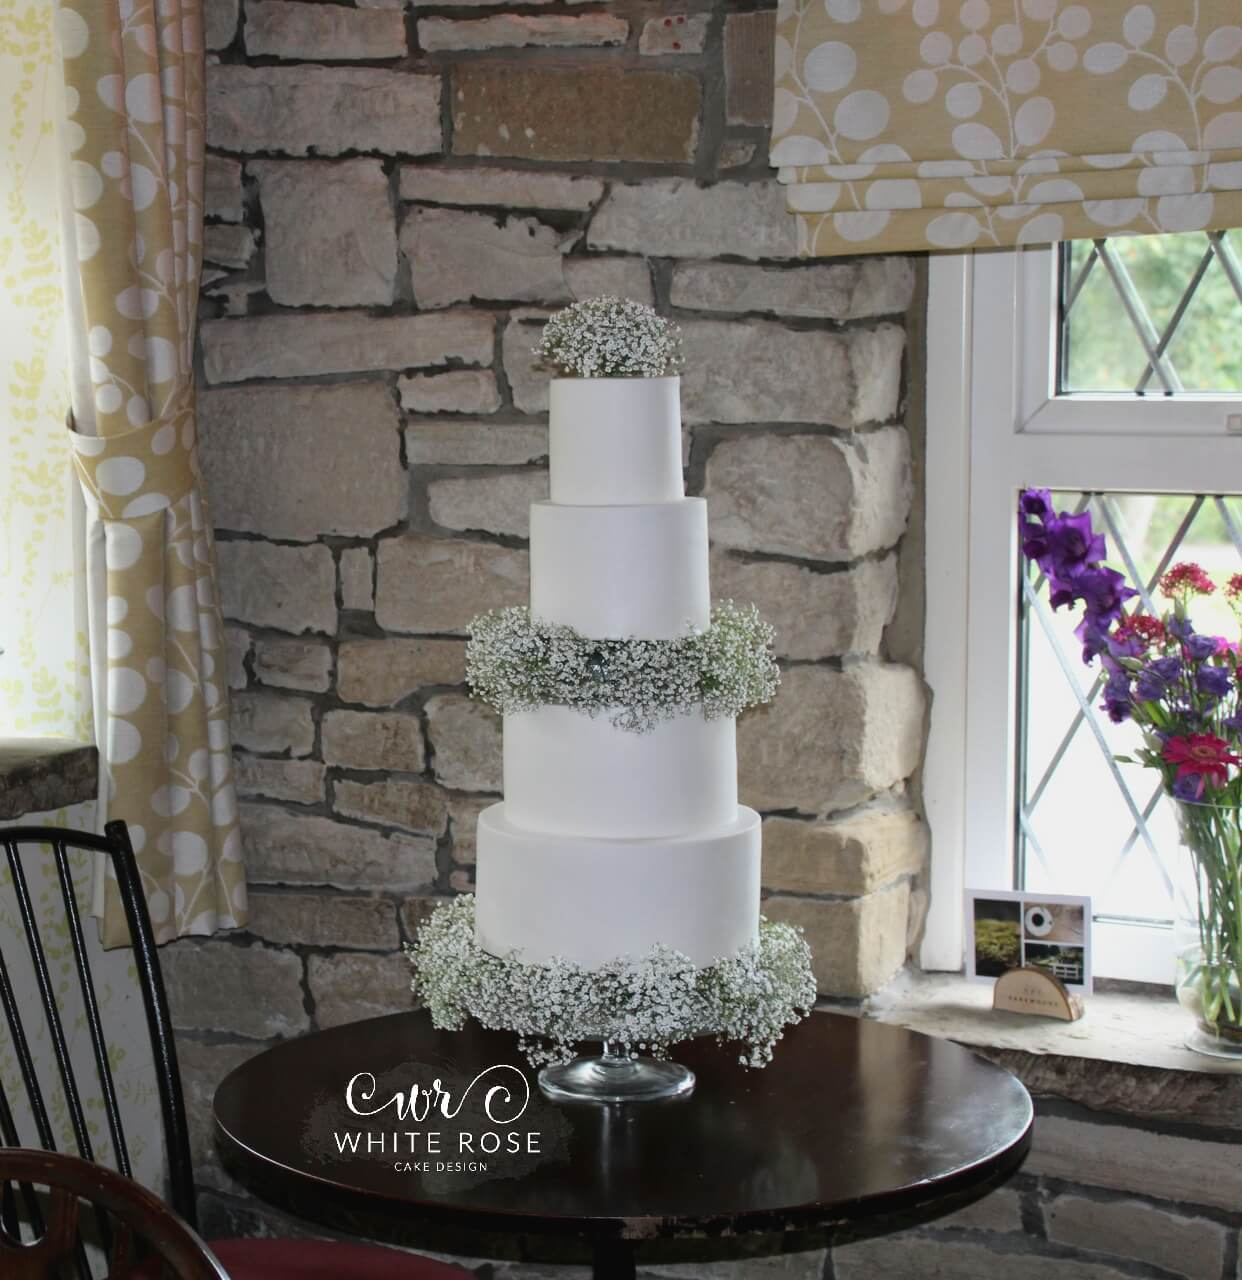 Four Tier Wedding Cake with Gypsophelia at The Sands House in Huddersfield by White Rose Cake Design Wedding Cake Makers